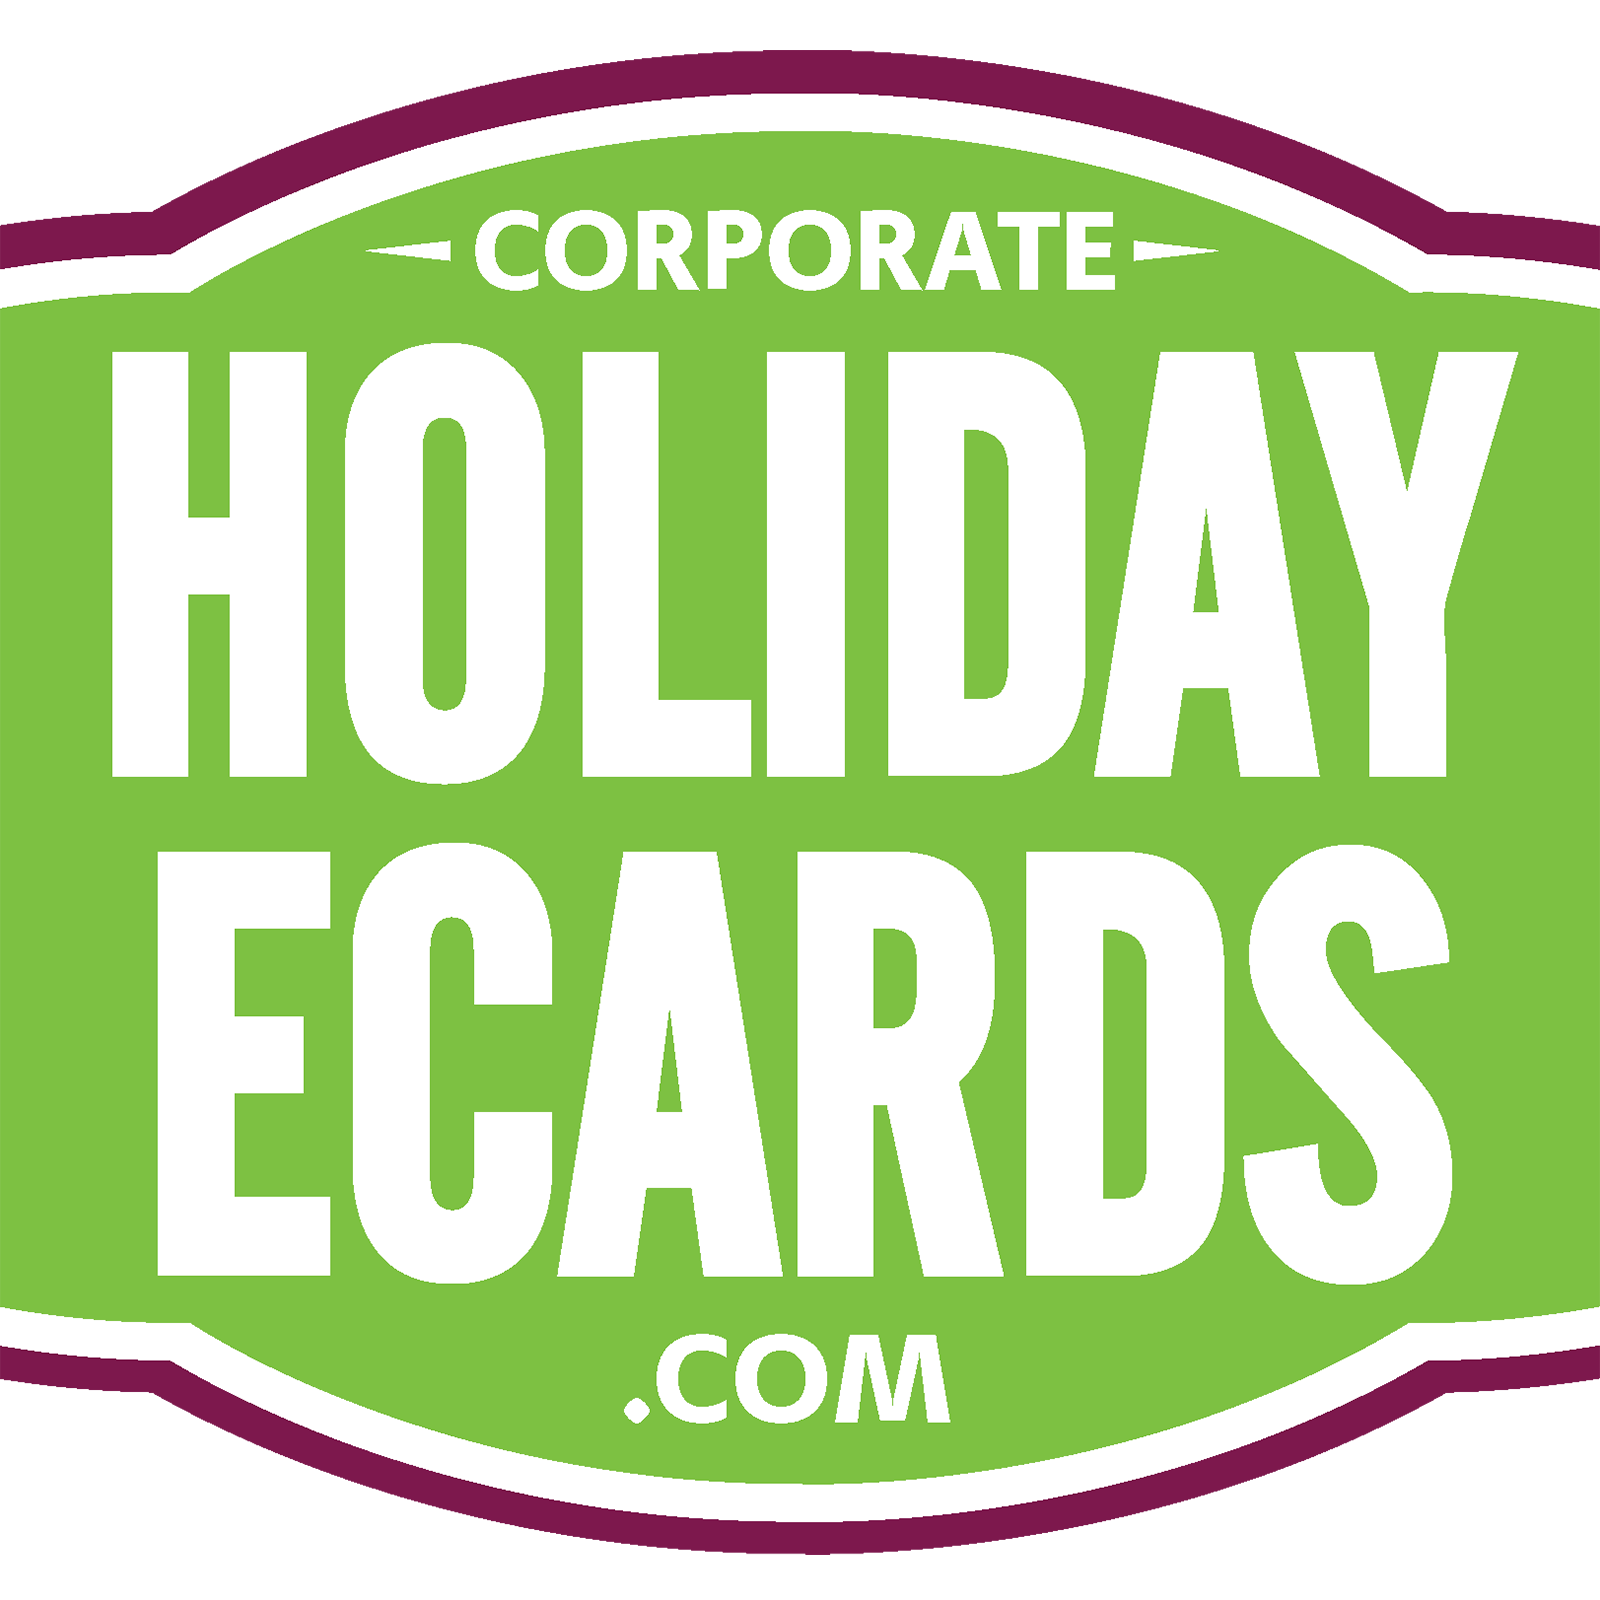 Holiday ecards for business corporateholidayecards kristyandbryce Image collections